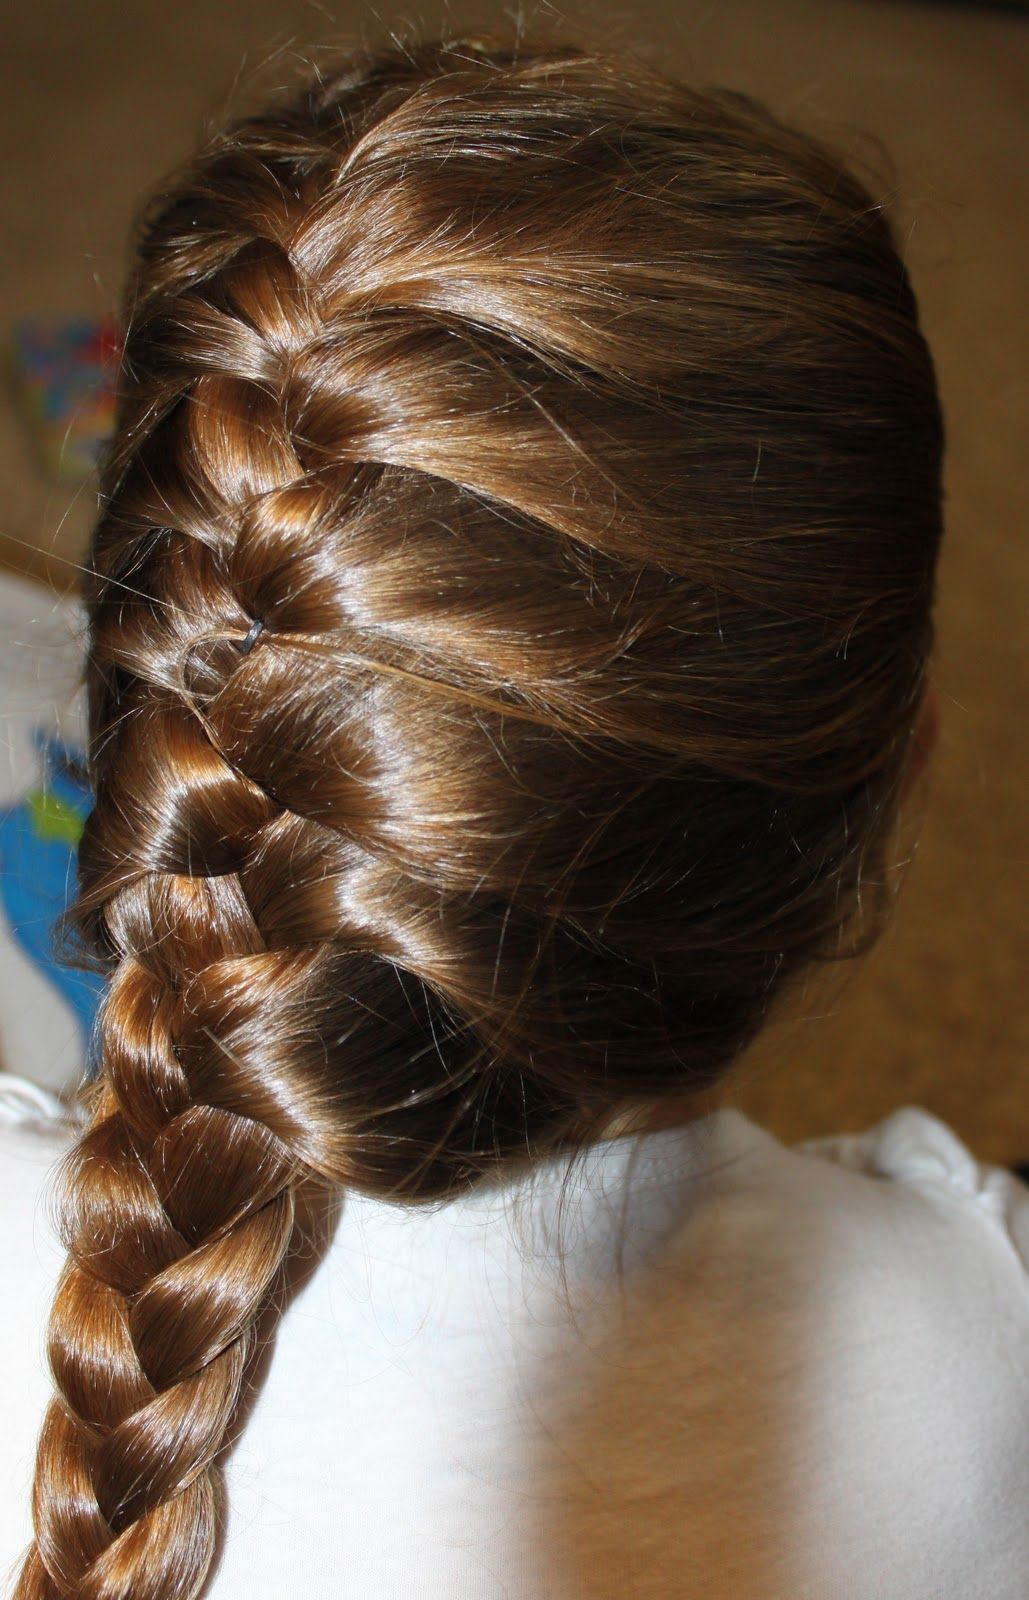 french braid | Hairstyles for Girls.. The Wright Hair ...